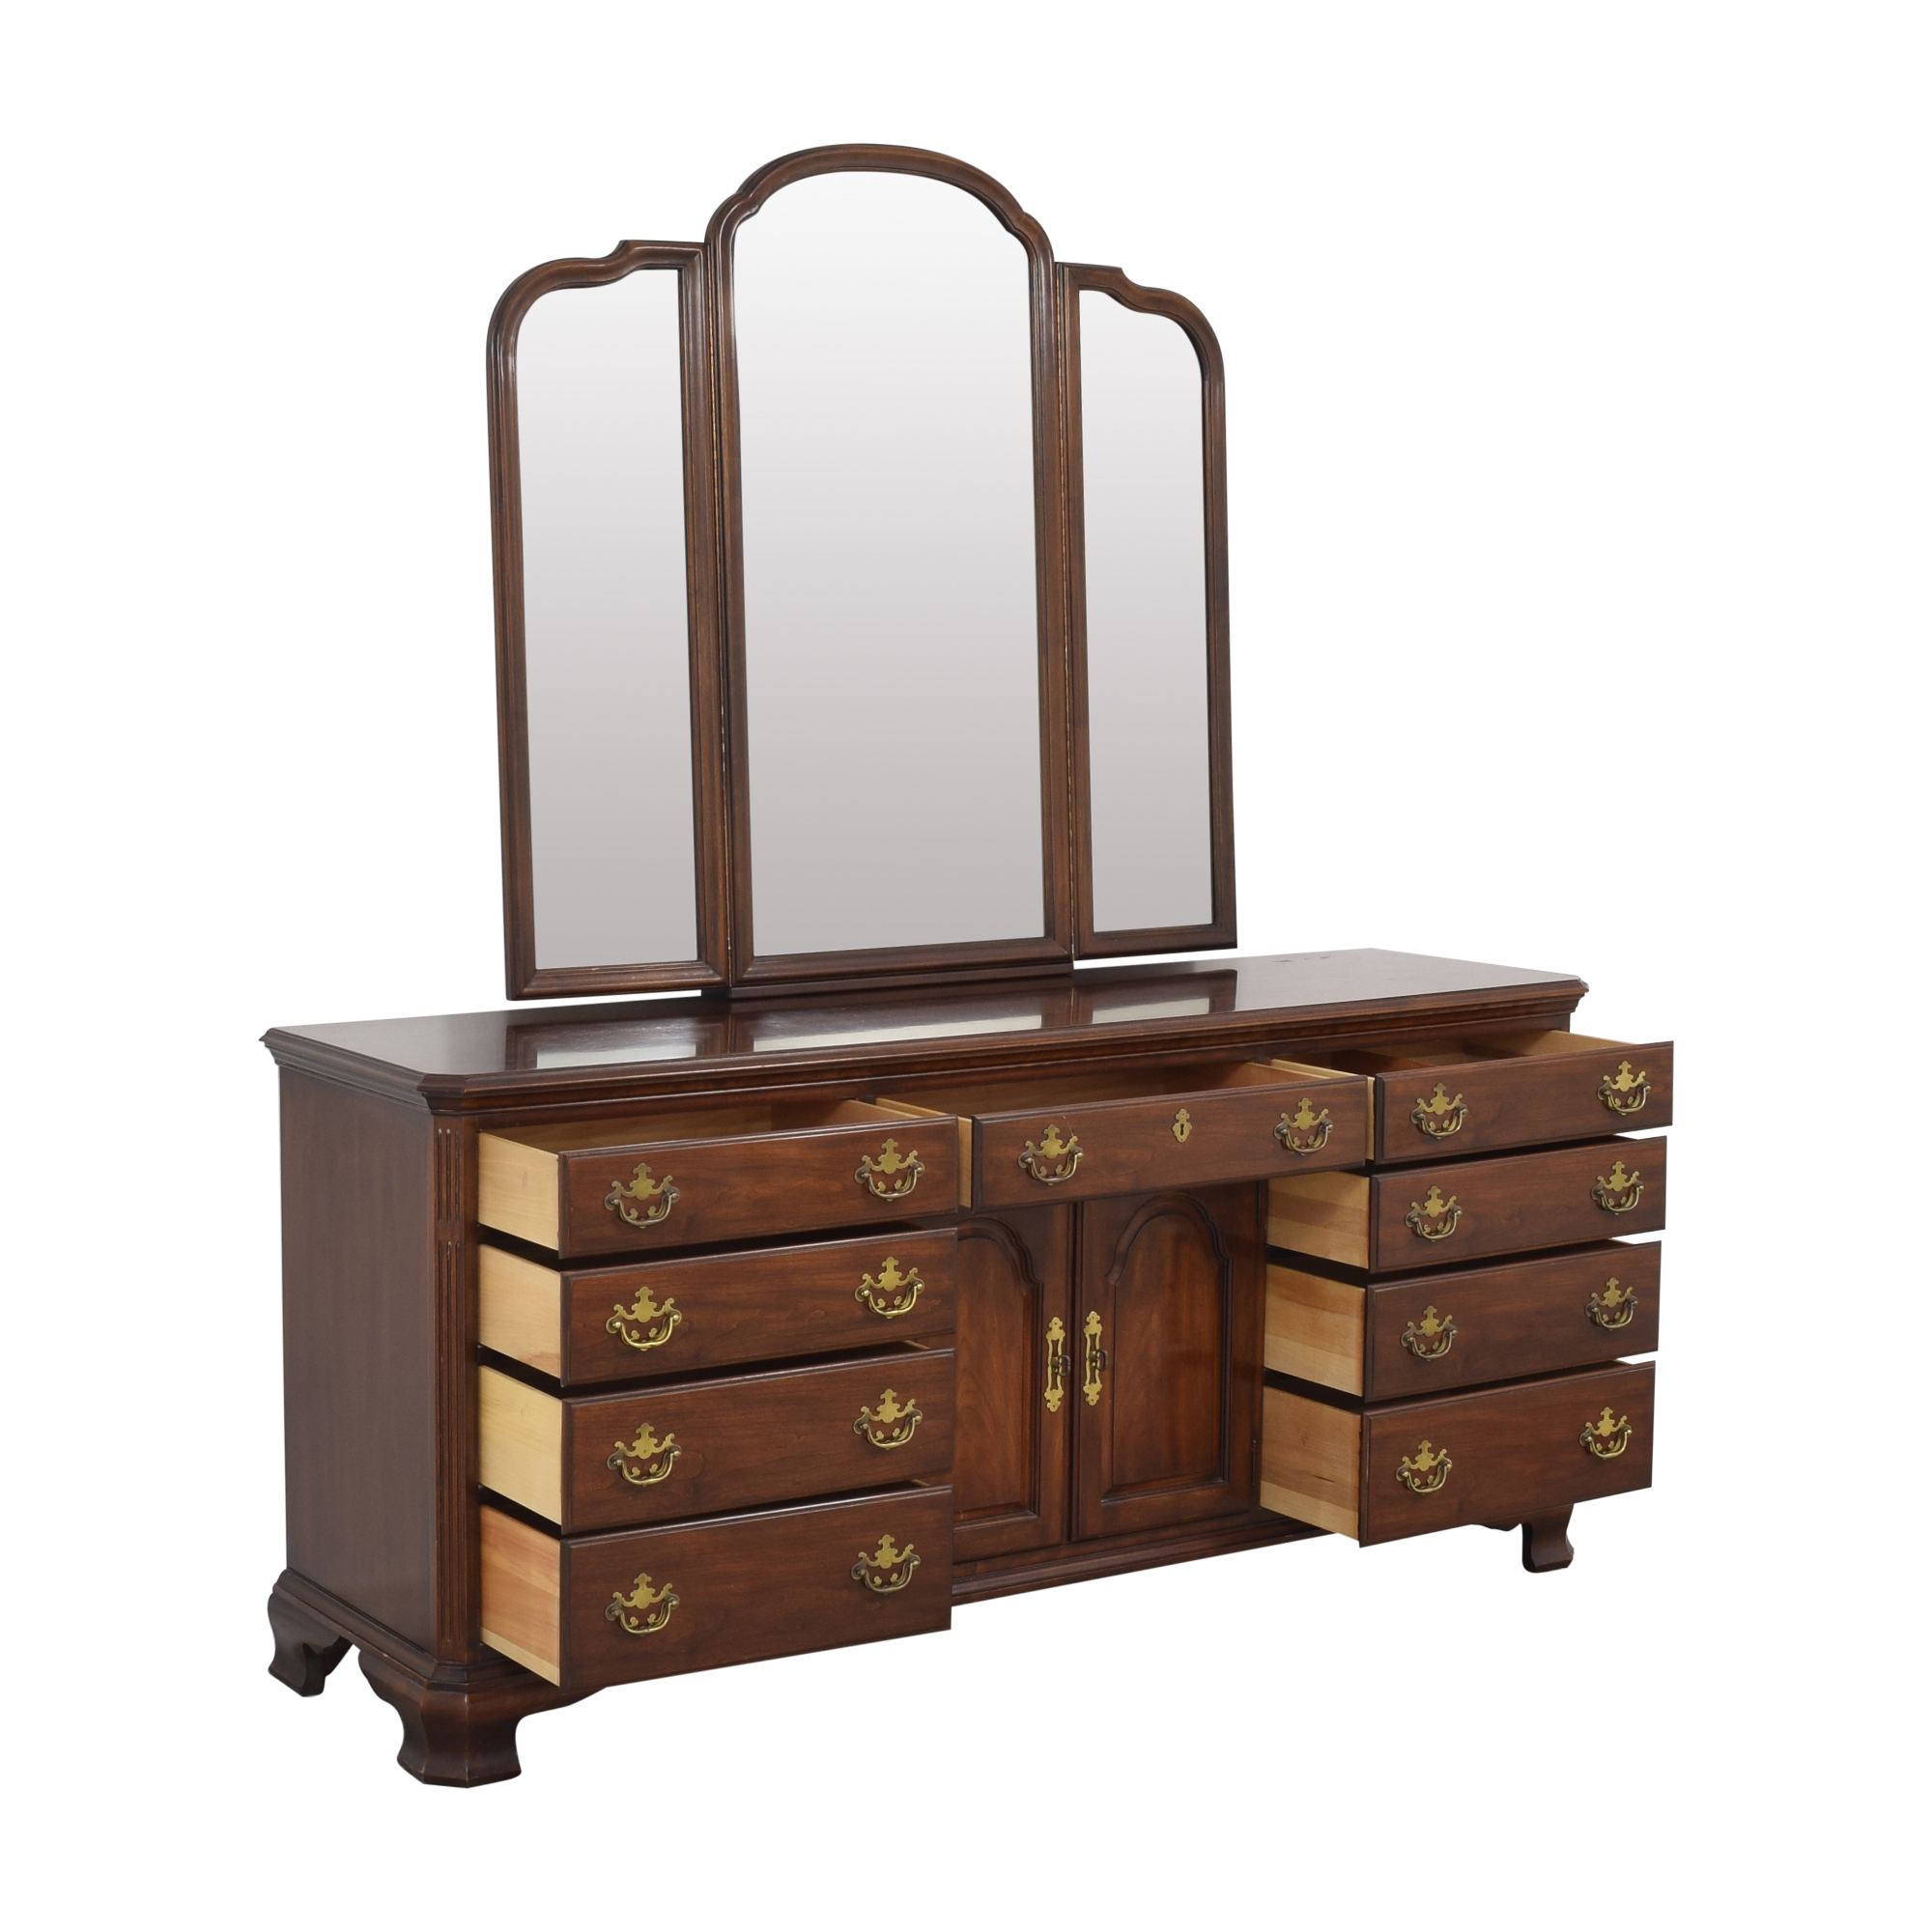 Drexel Drexel Triple Dresser with Trifold Mirror pa